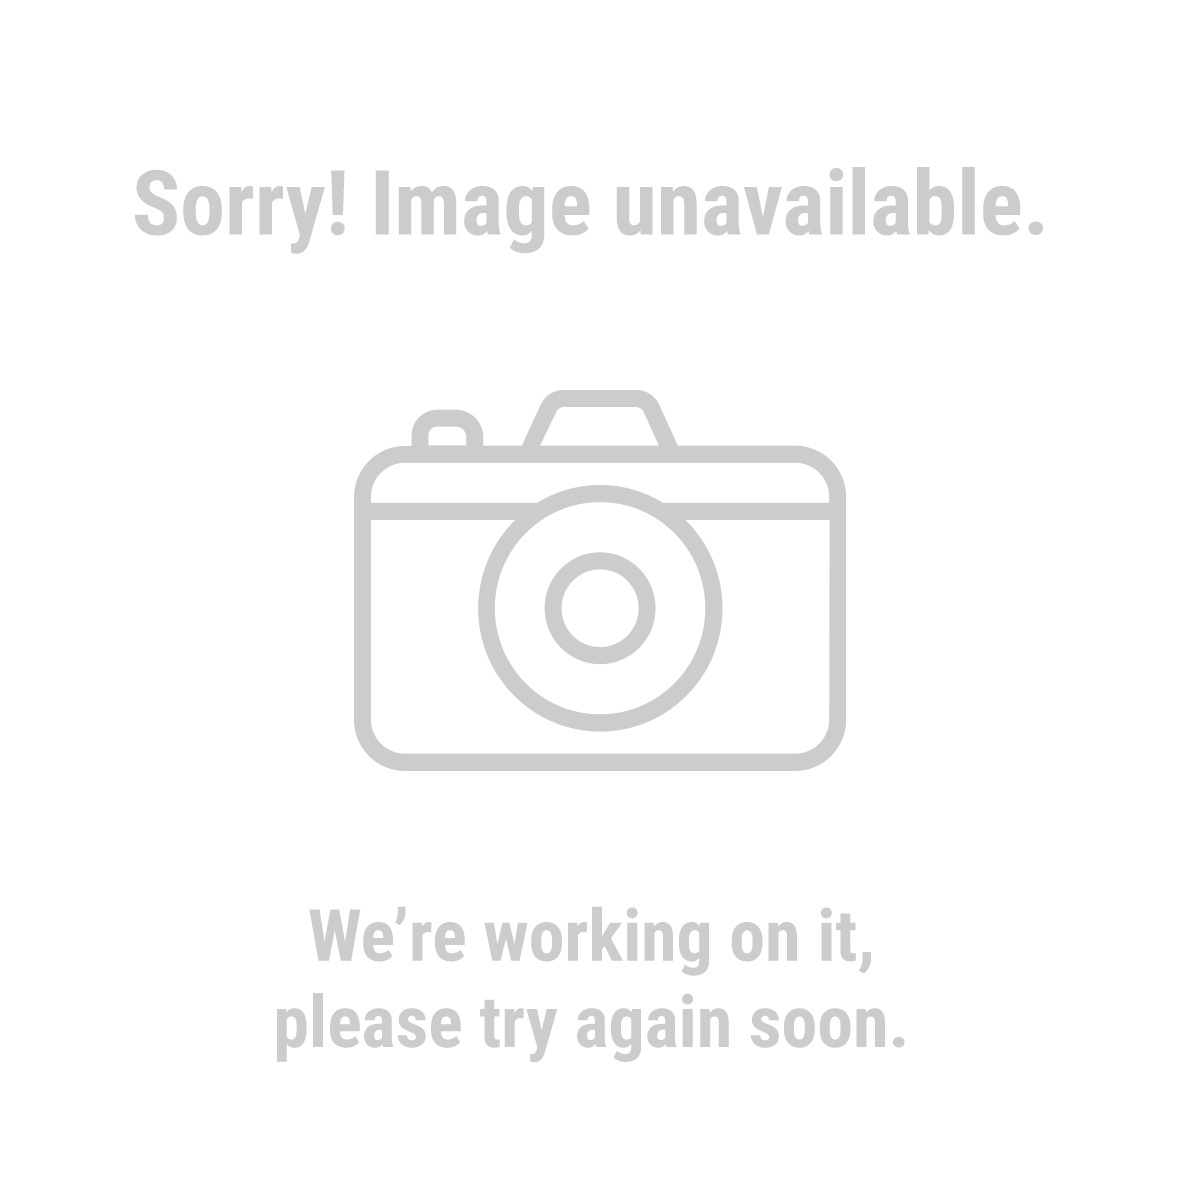 bbac0e7ecc93 3/4 In. x 35 Ft. Roll Hook and Loop Cable Strap